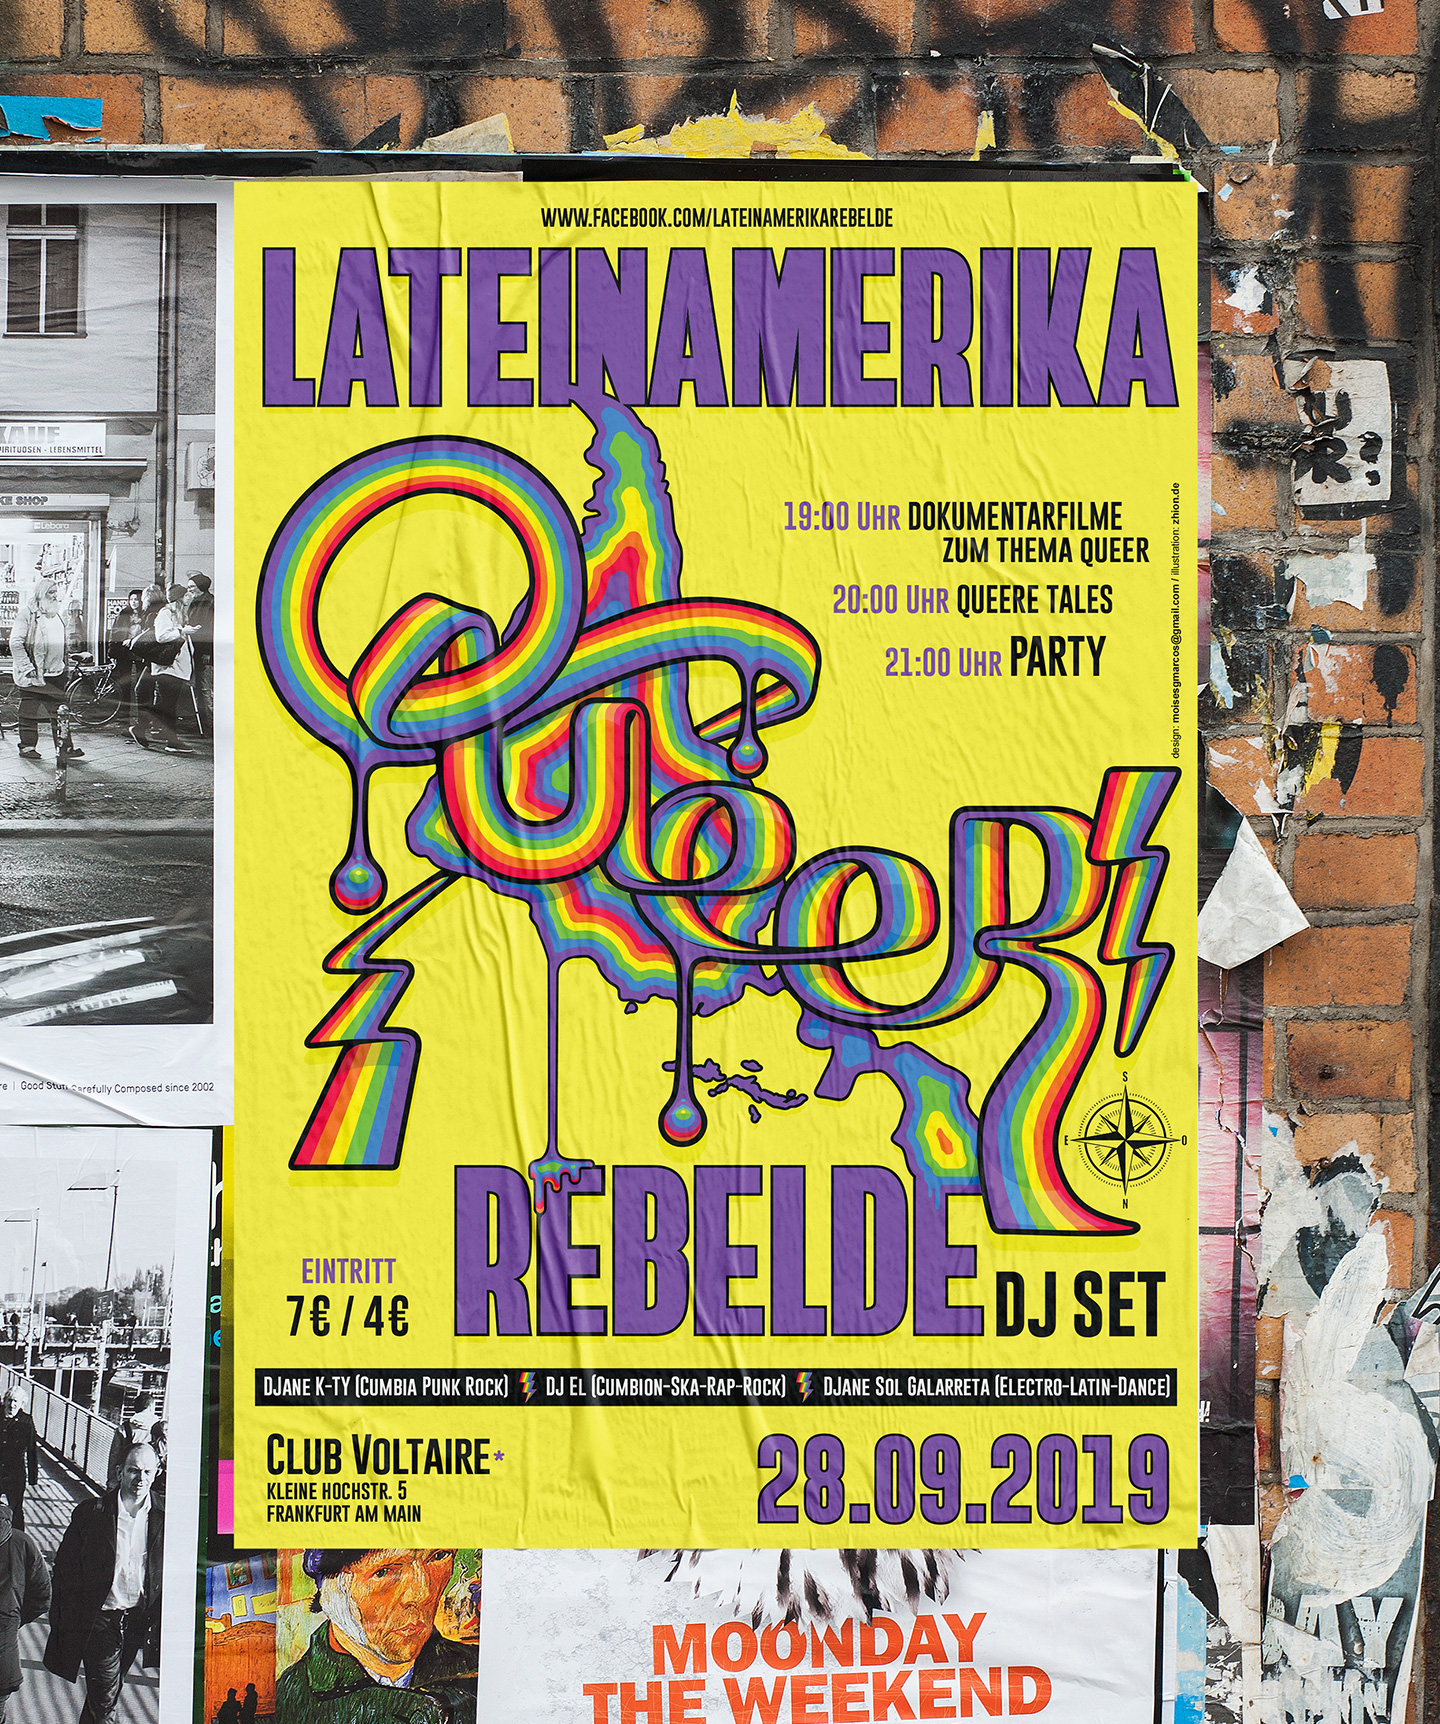 illustration_andre_levy_zhion_vector_pop_queer_type_rainbow_latin_america_dripping_rebelde_poster_event.jpg